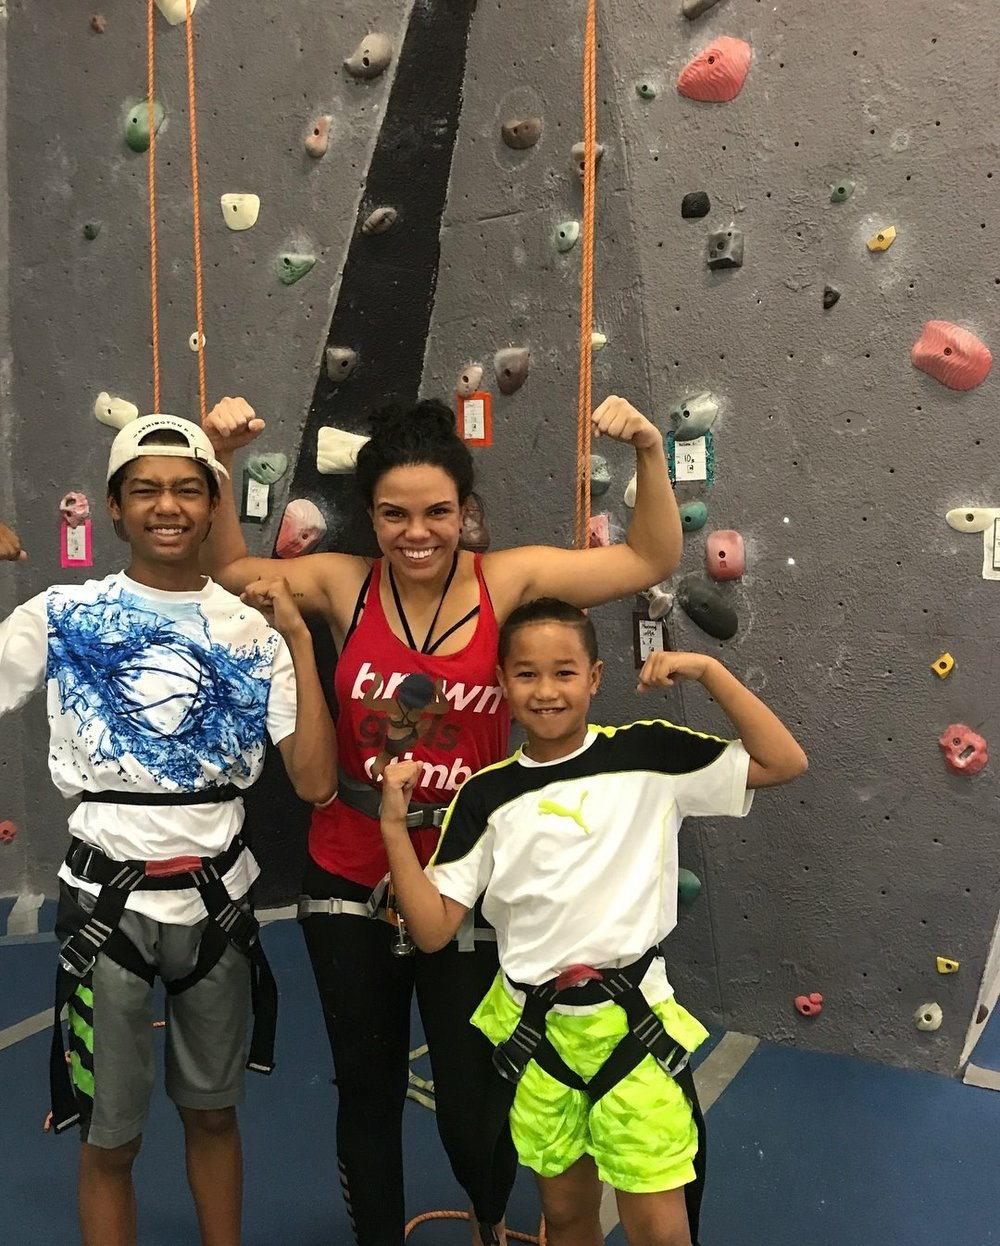 My nephews Raylen, Jayden and I at Coral Cliff Climbing Gym in Fort Lauderdale, Florida.